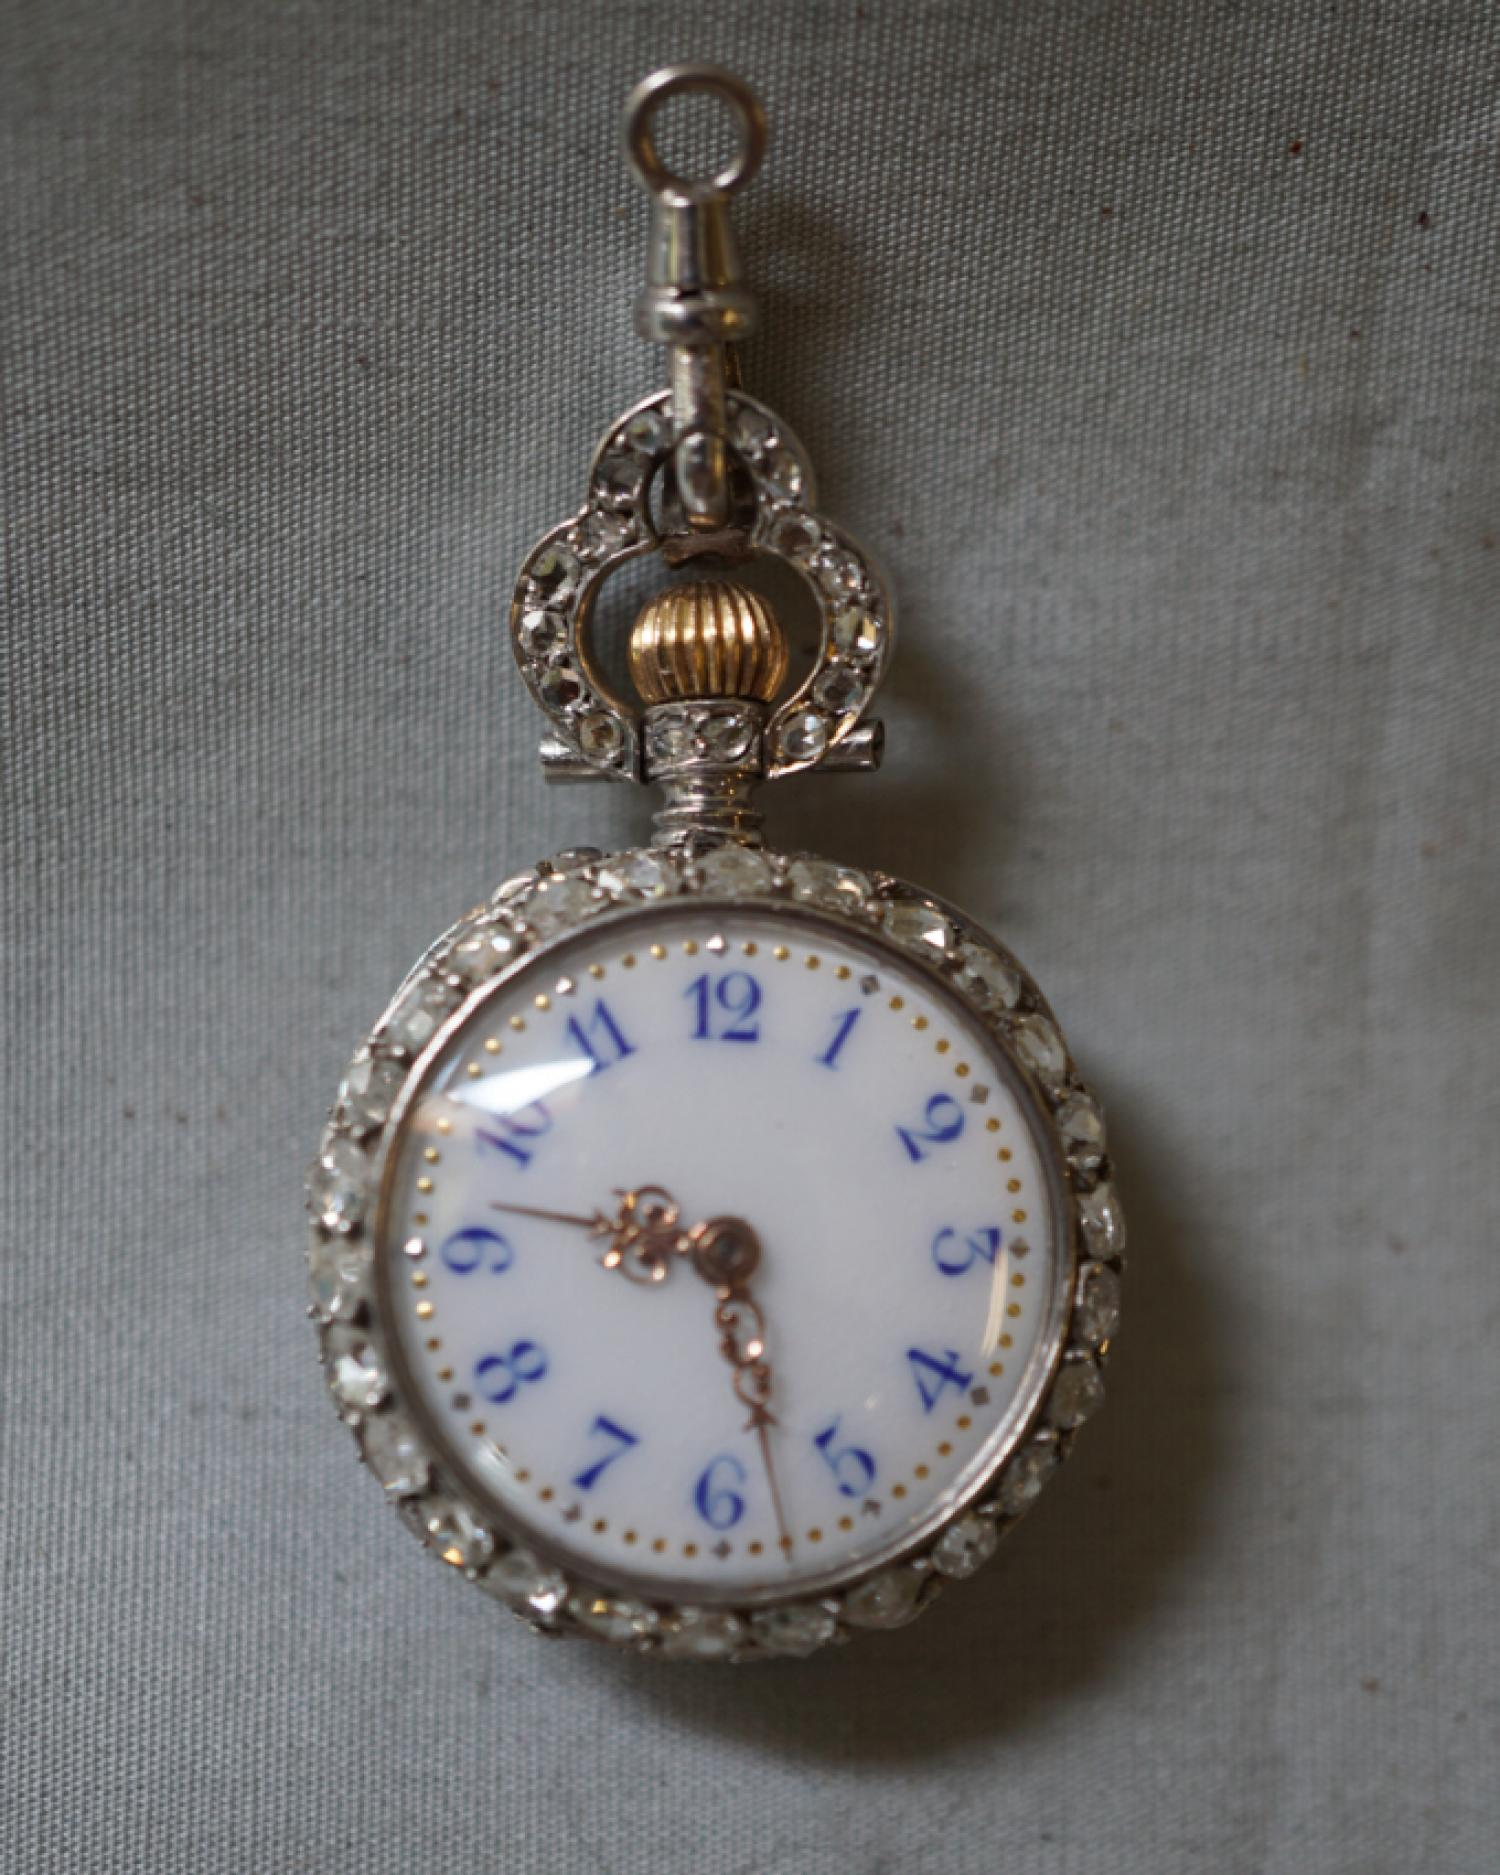 Antique silver and diamond pendant watch